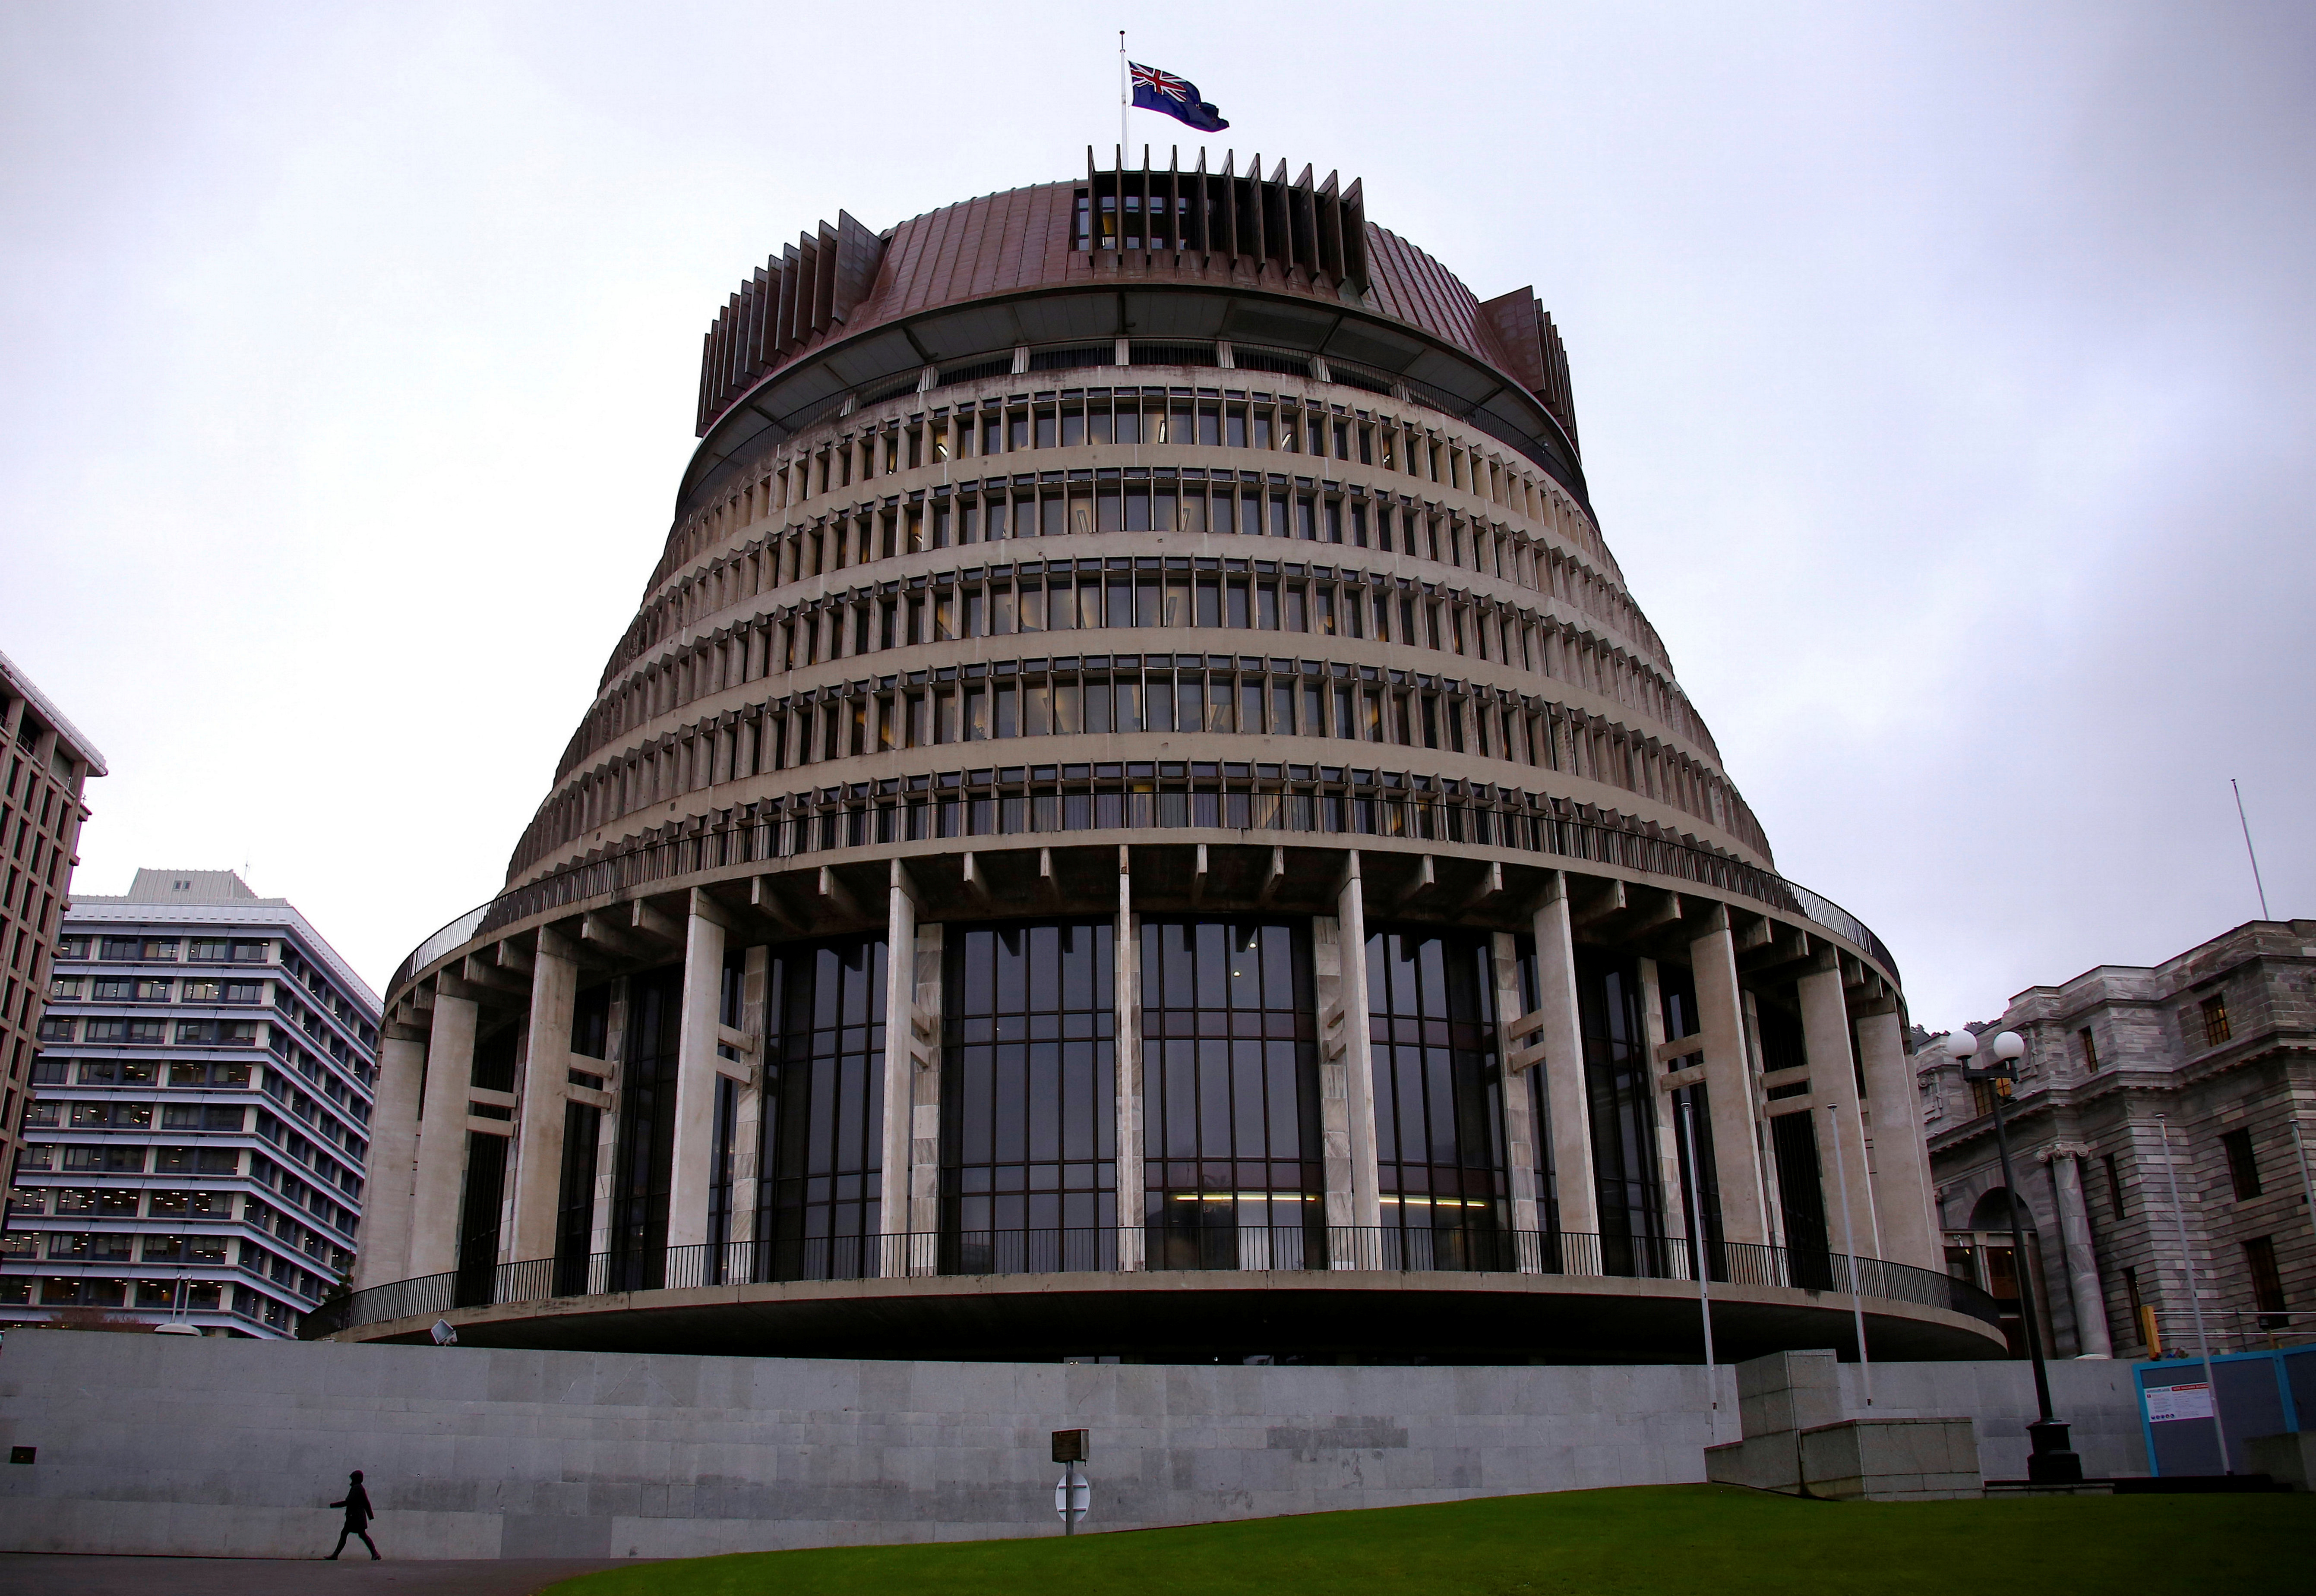 A pedestrian walks past the New Zealand parliament building known as the Beehive in central Wellington, New Zealand, July 3, 2017. Picture taken July 3, 2017.   REUTERS/David Gray